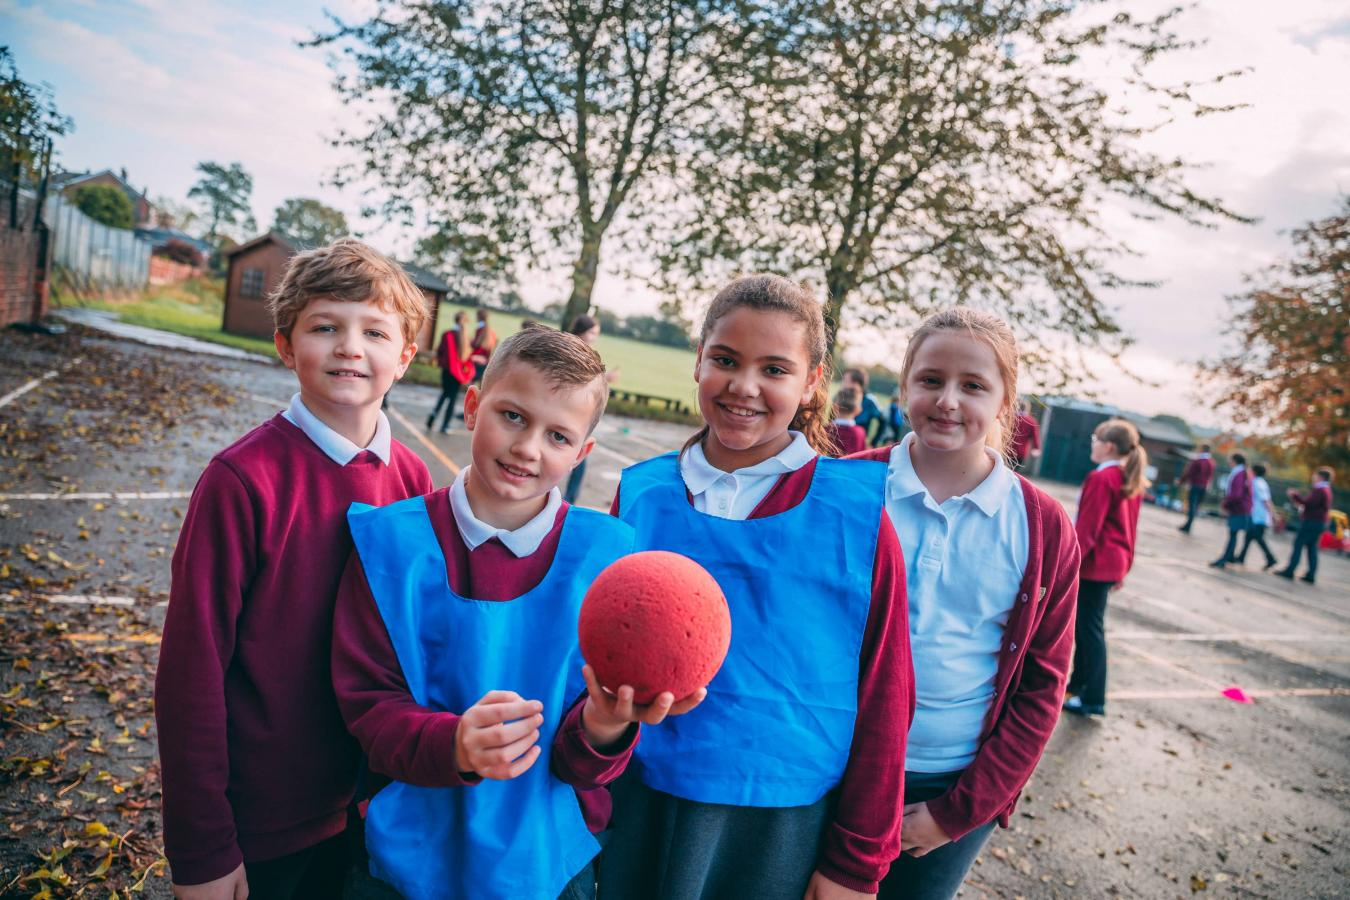 Pupils playing with a ball